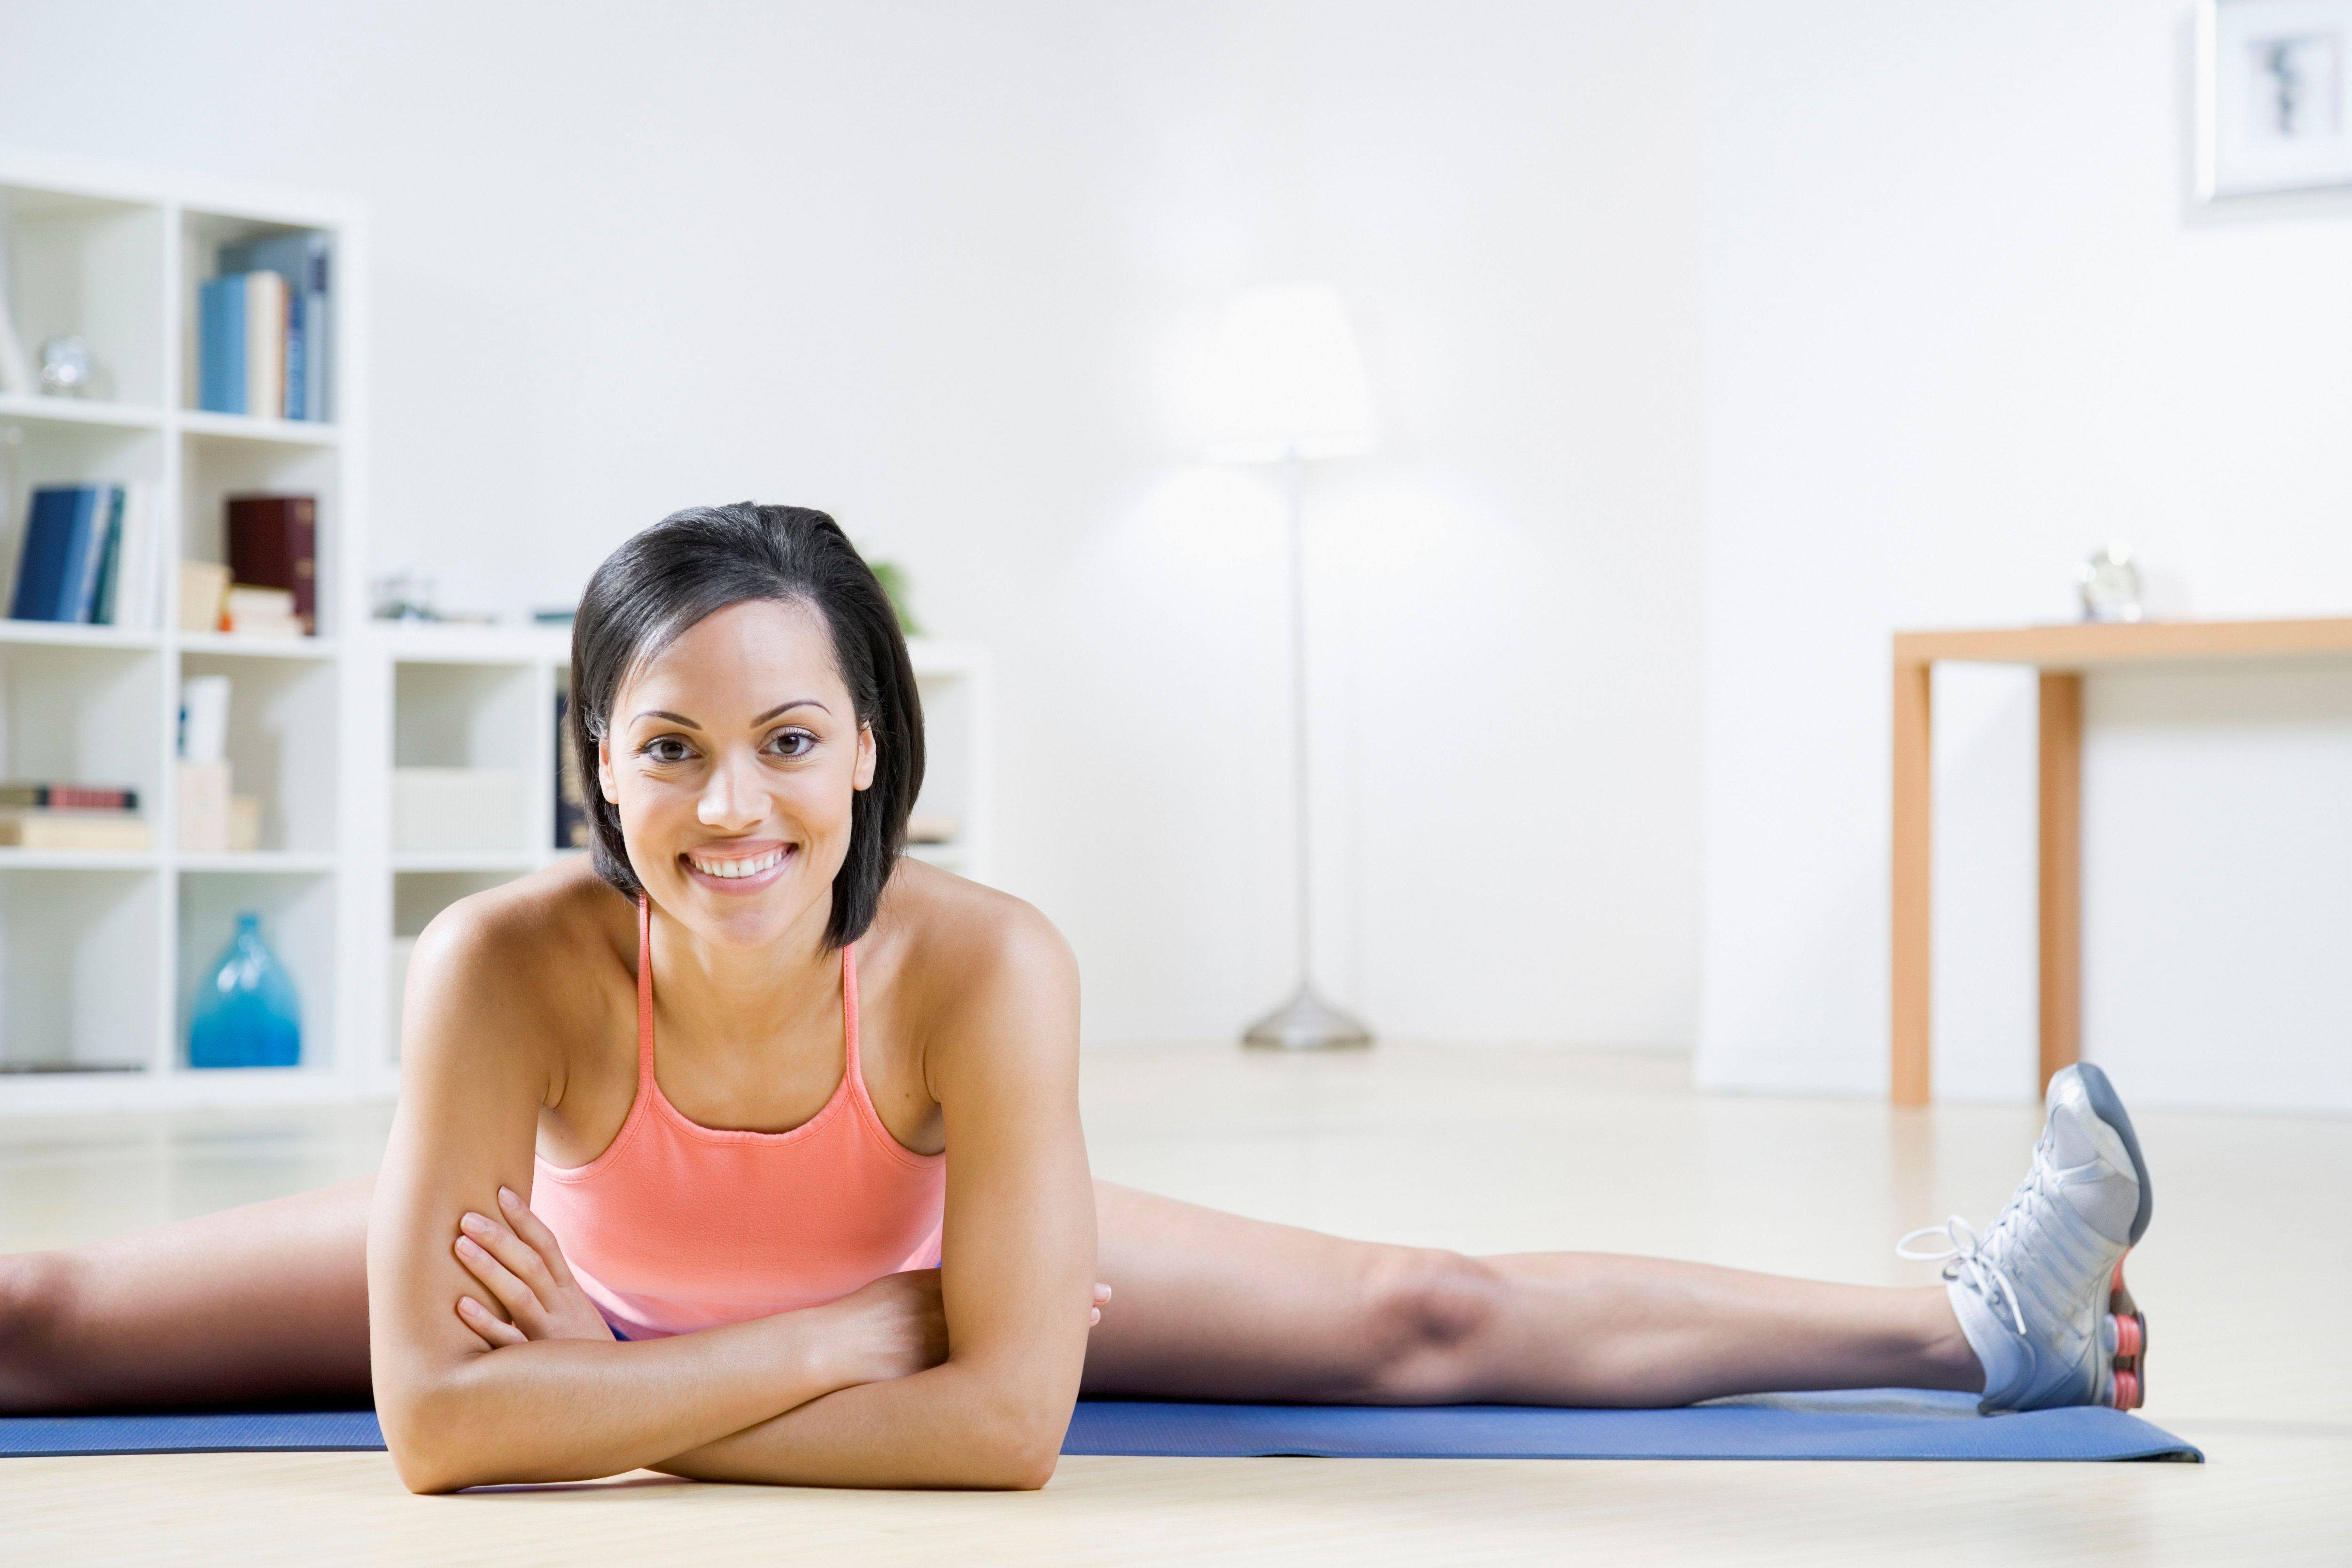 How To Do The Splits In 8 Steps